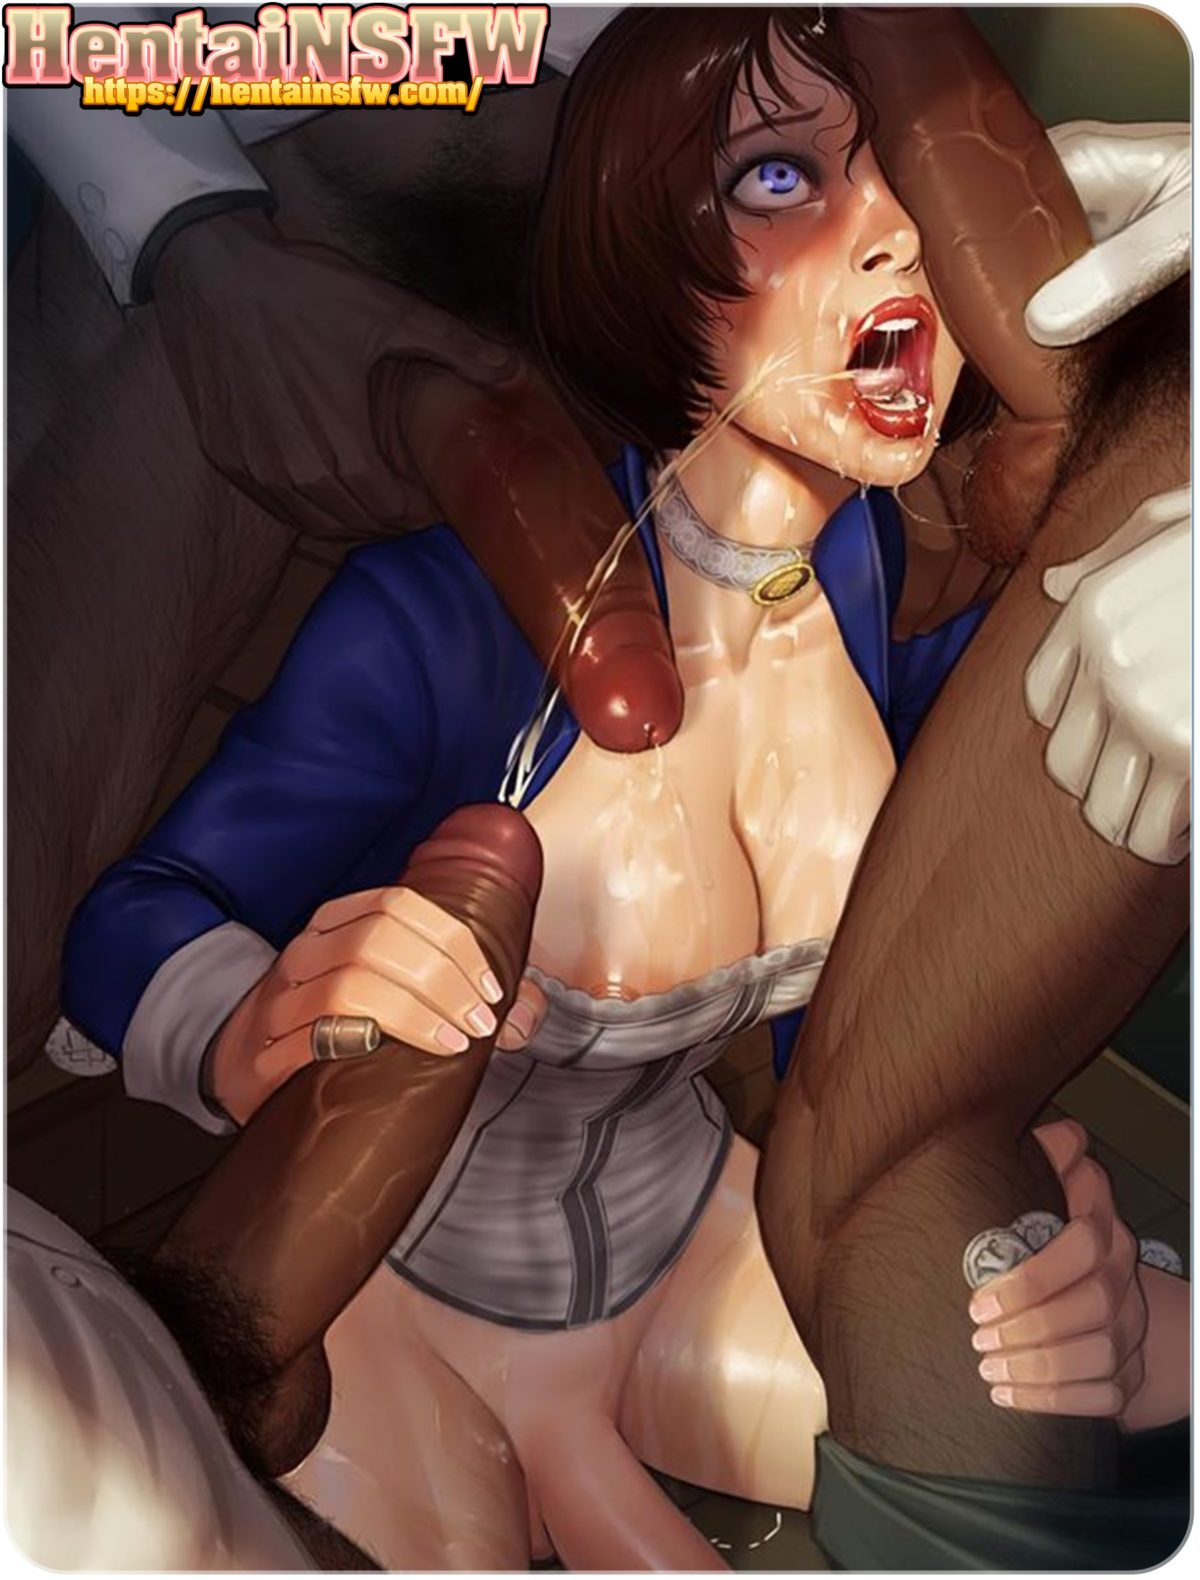 NSFW xxx illustration of futanari hentai monster cock gang fucking art.